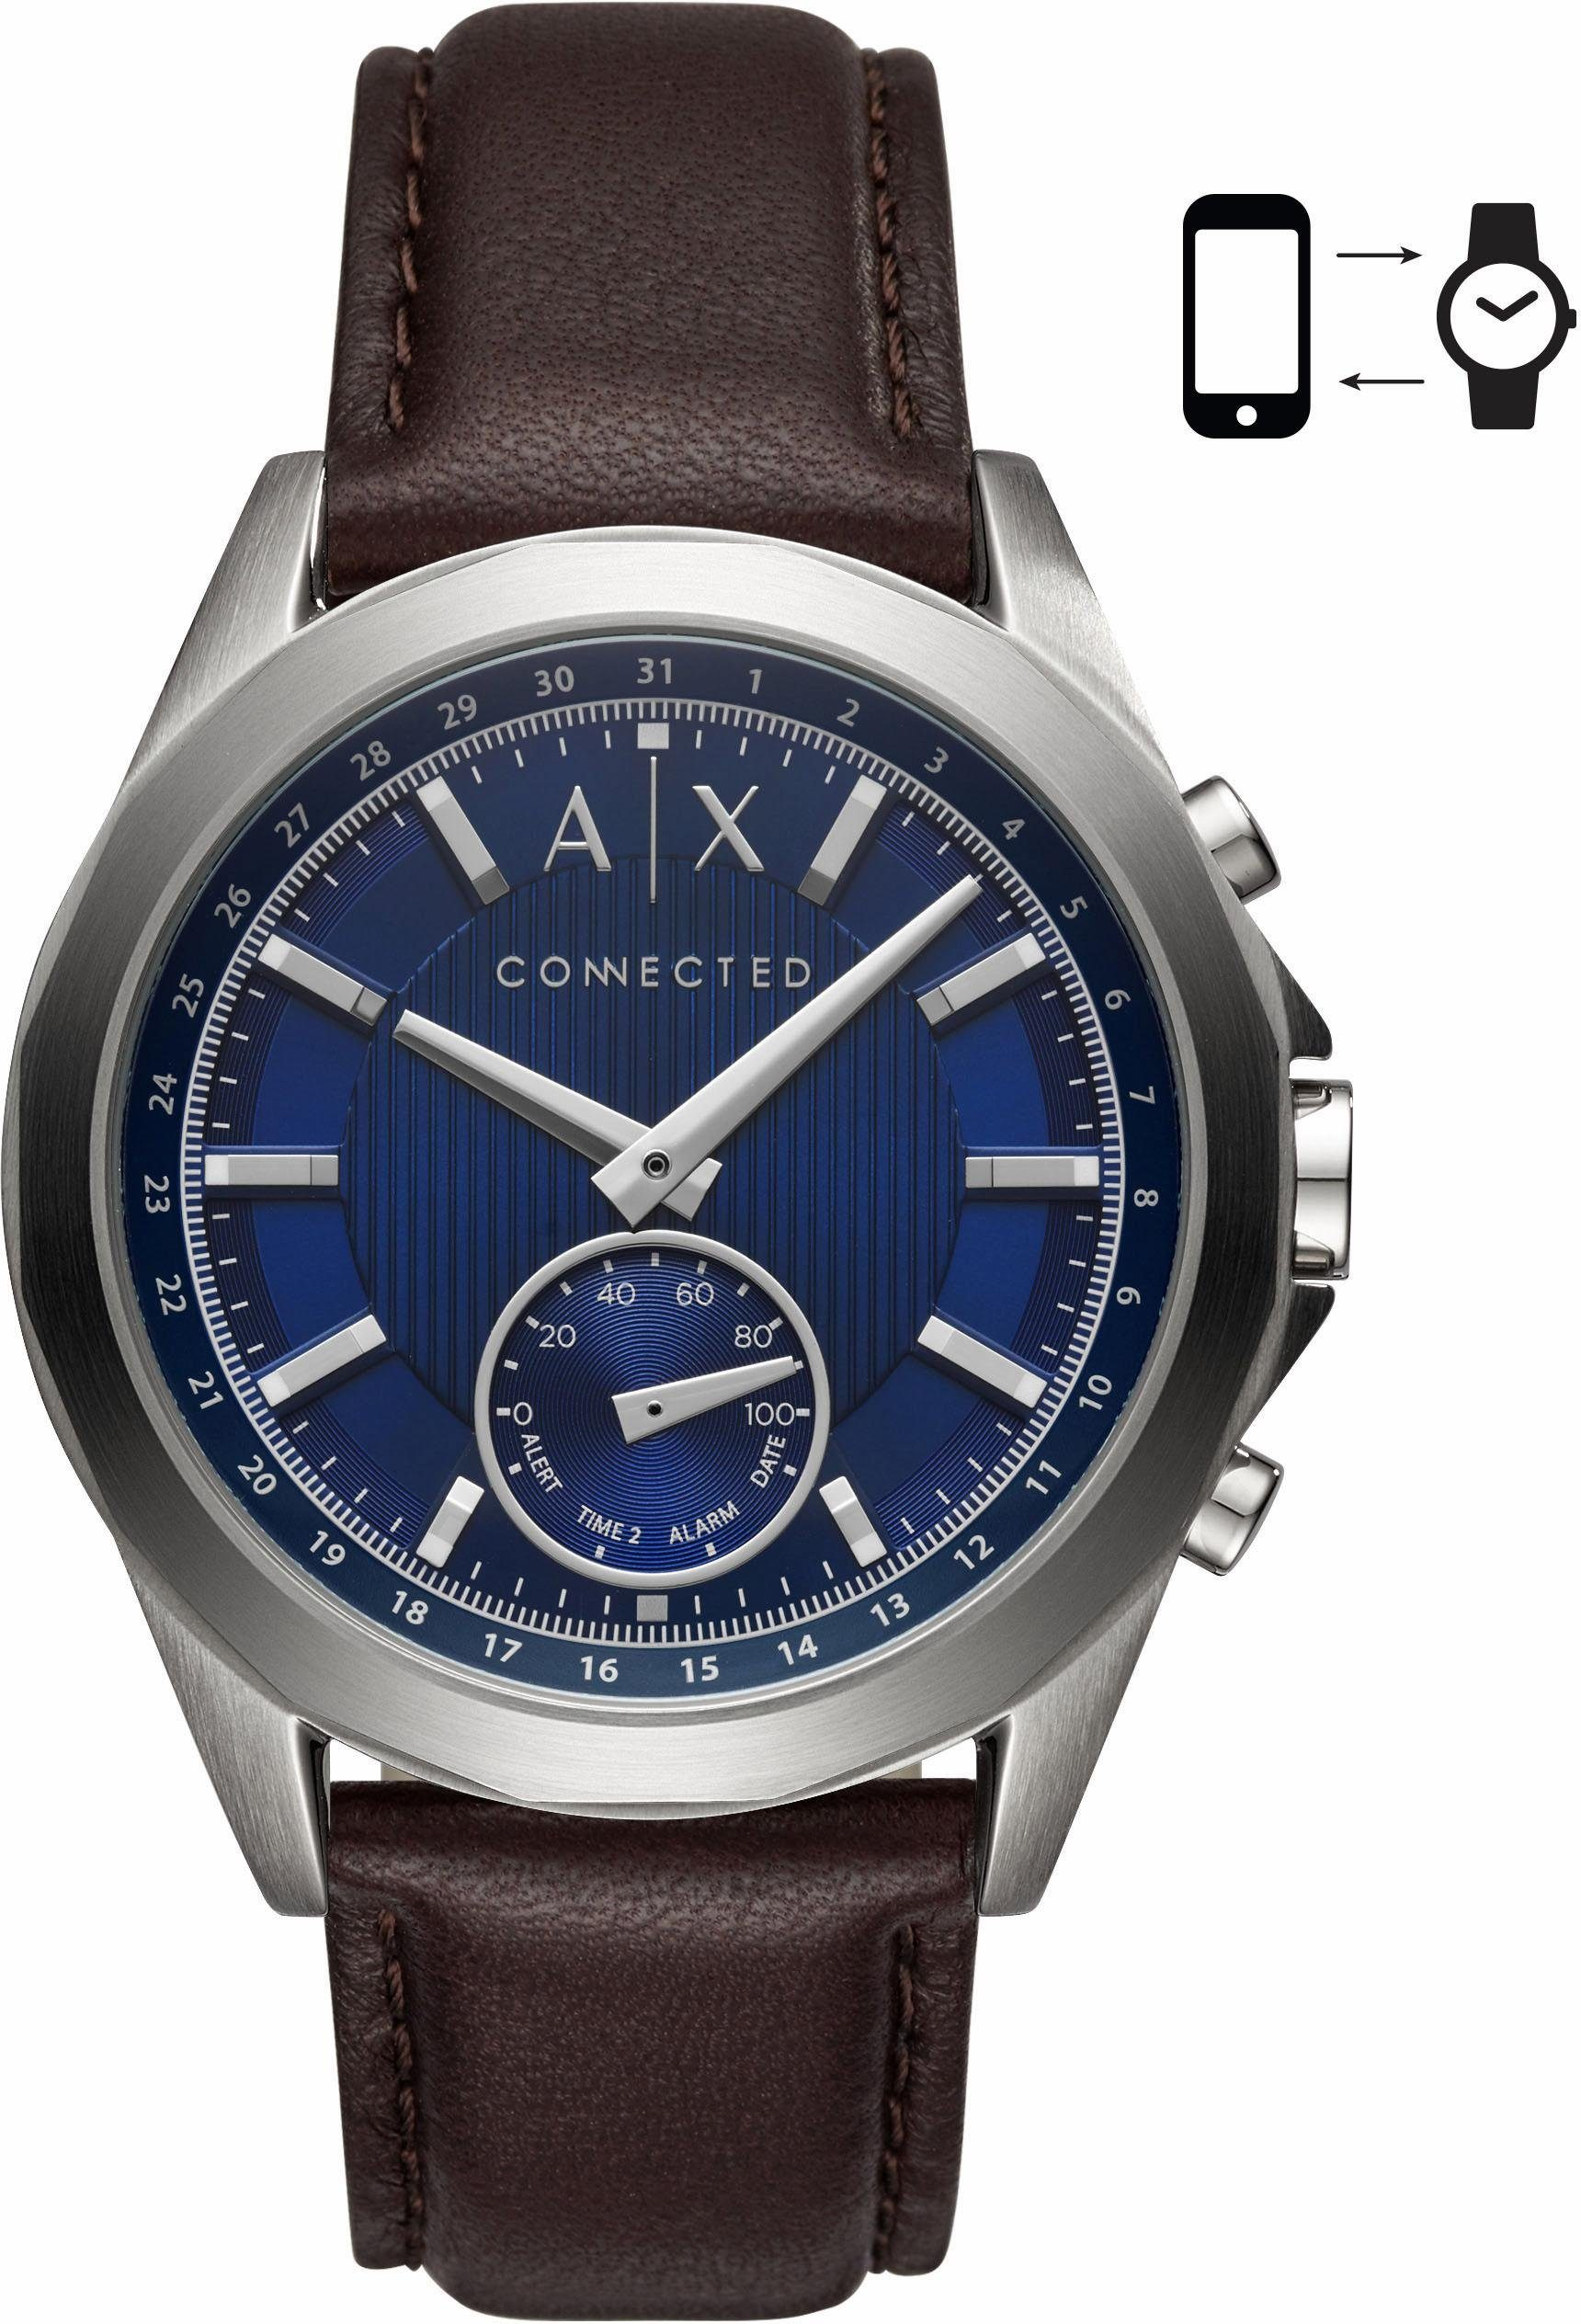 Armani Exchange Connected AXT1010 Smartwatch (Android Wear)